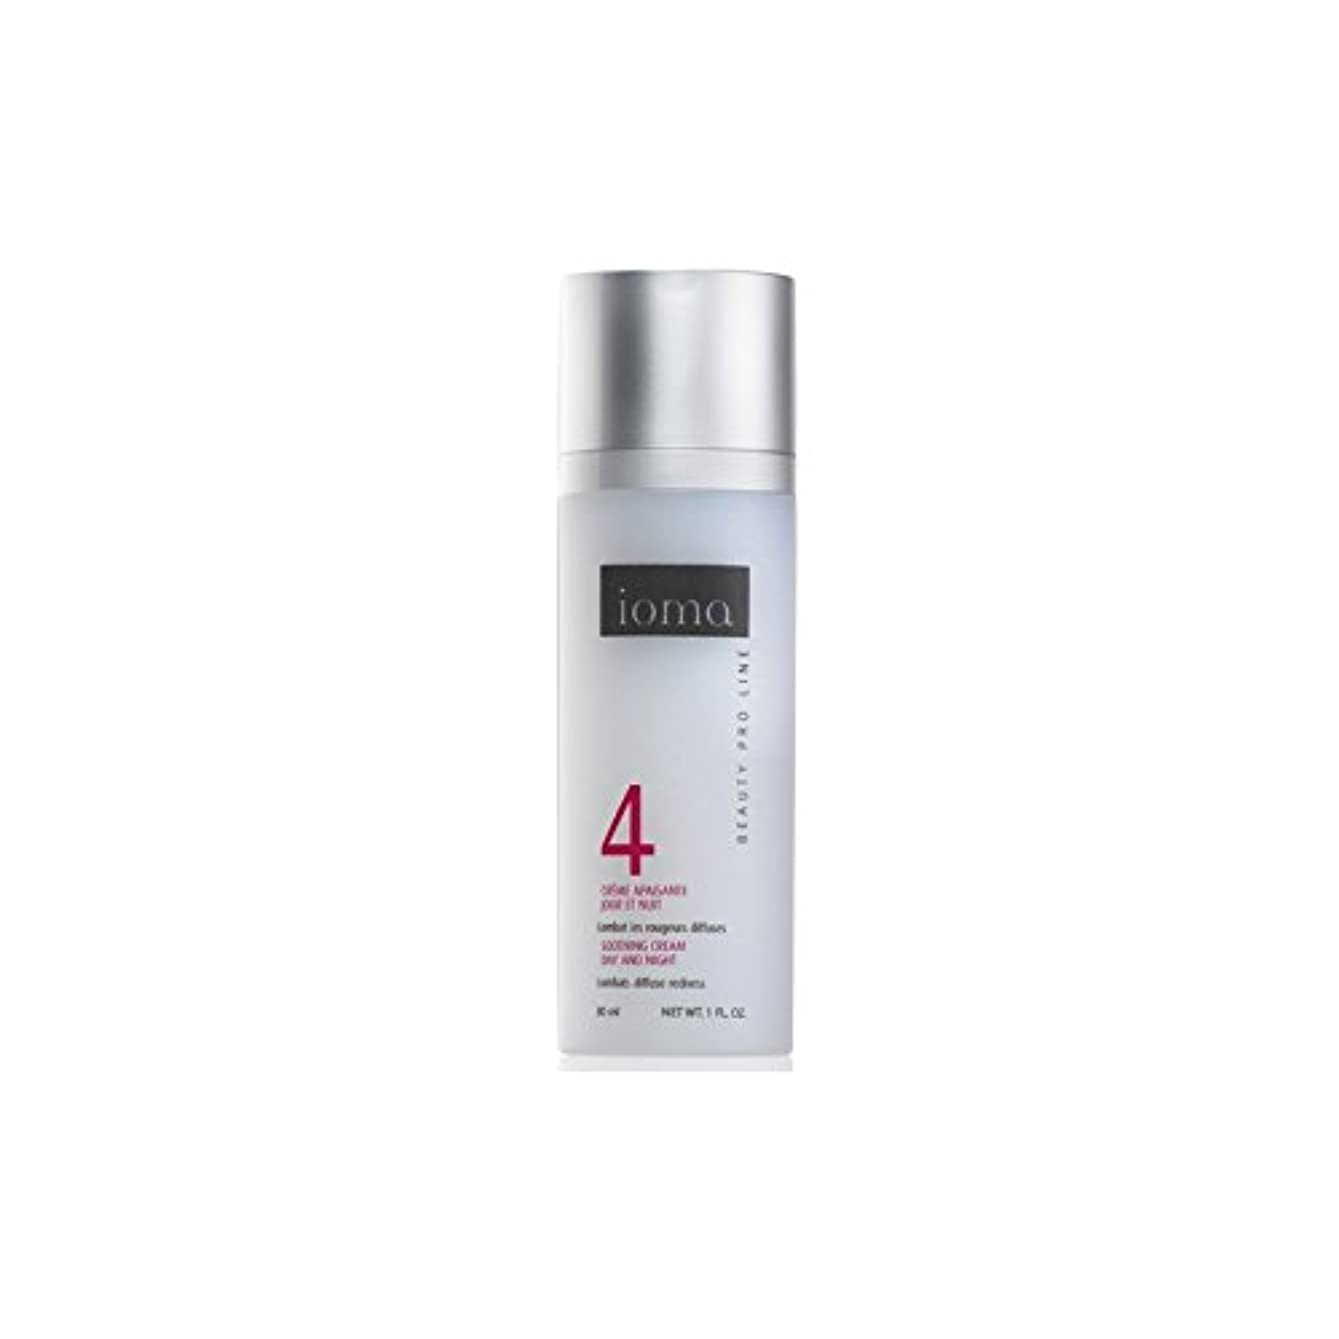 Ioma Soothing Cream Day And Night 30ml (Pack of 6) - なだめるクリームの昼と夜の30ミリリットル x6 [並行輸入品]